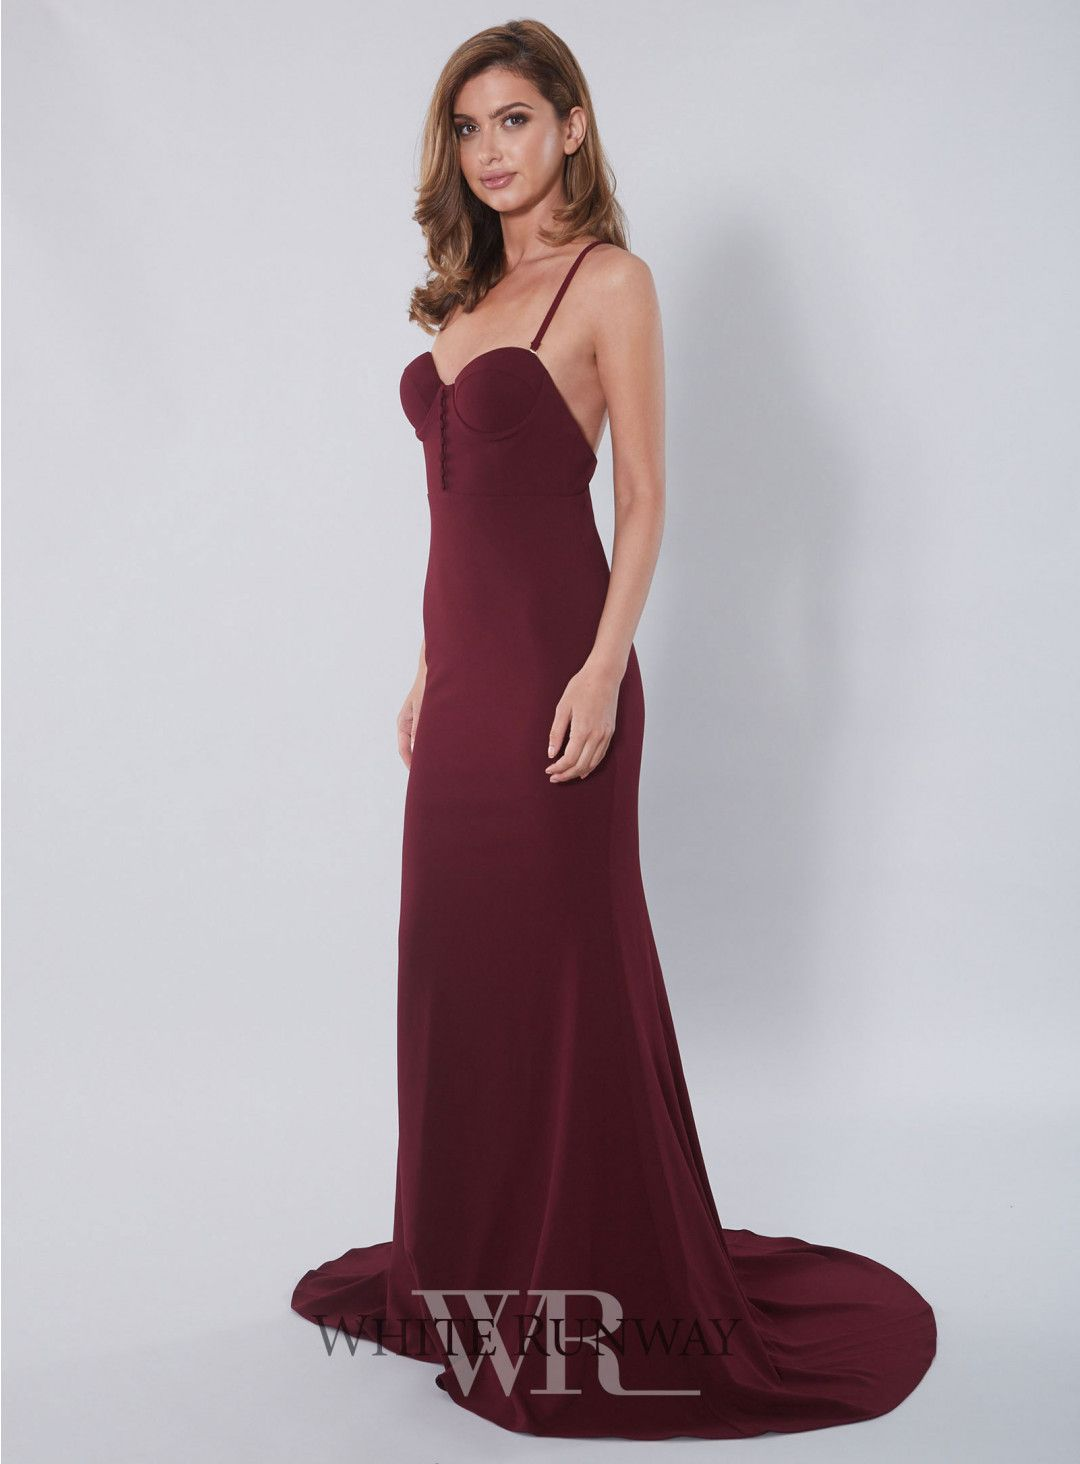 fbed3ae471 Sala Gown. A gorgeous full length dress by Samantha Rose. Features a  sweetheart neckline with corset bodice